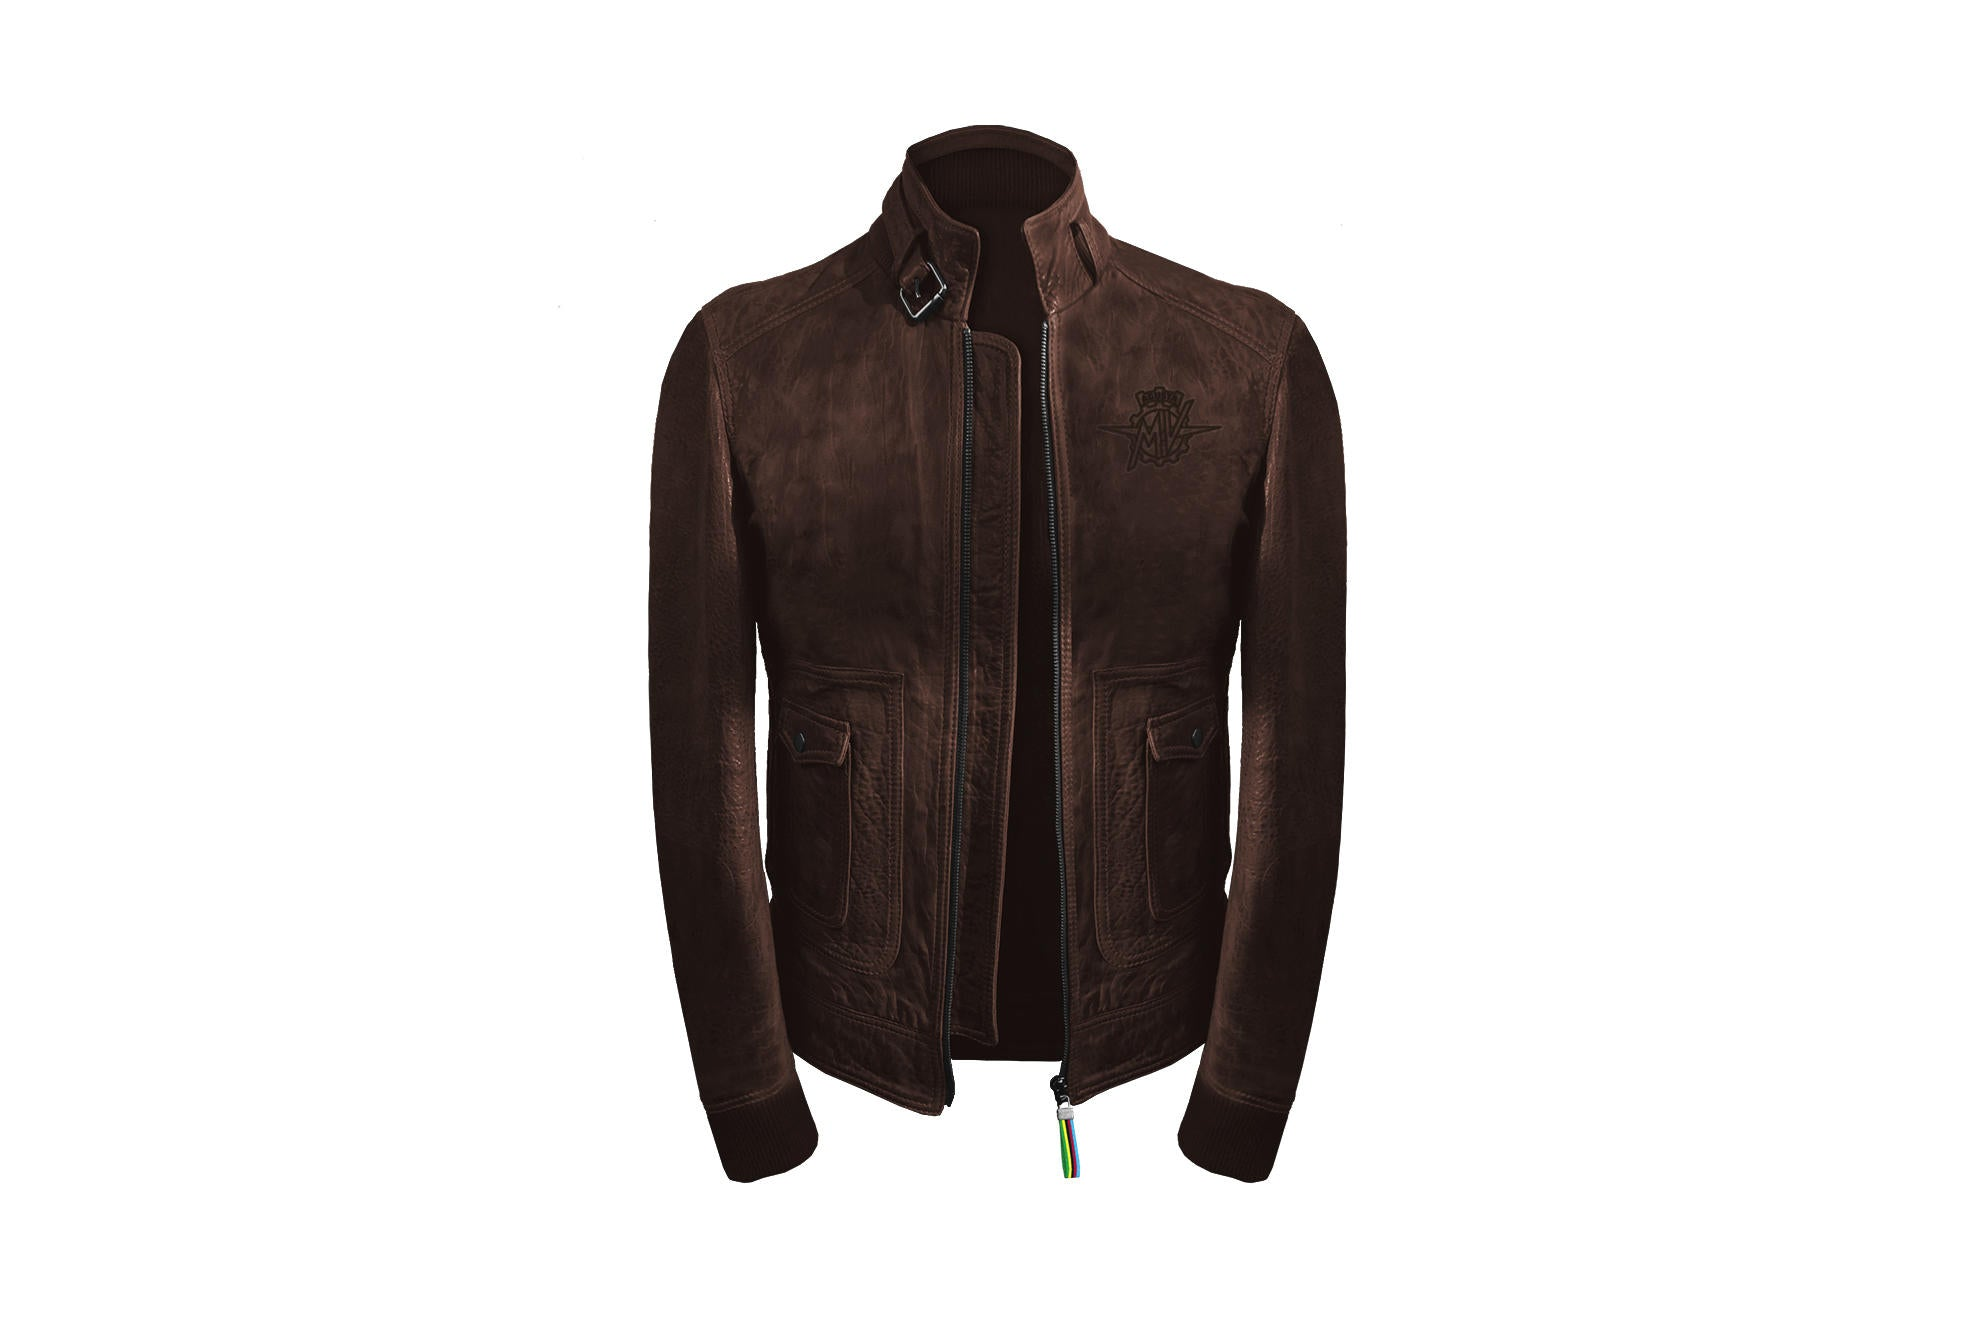 MV Agusta Vintage Leather Jacket, MV Agusta Clothing, MV Agusta - Averys Motorcycles